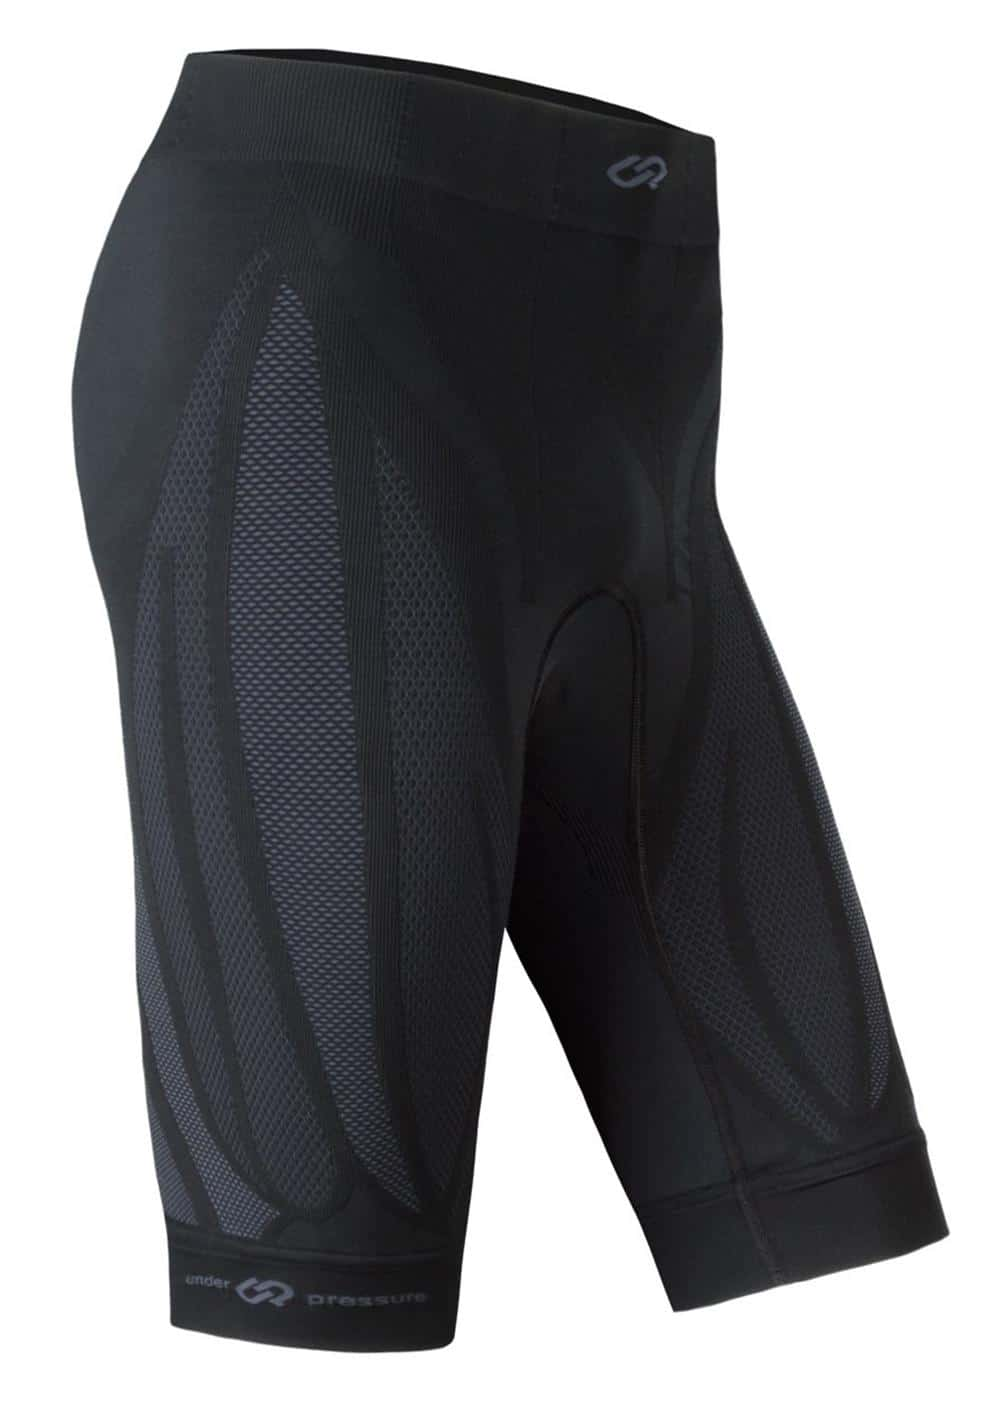 Under Pressure Accelerator Tights